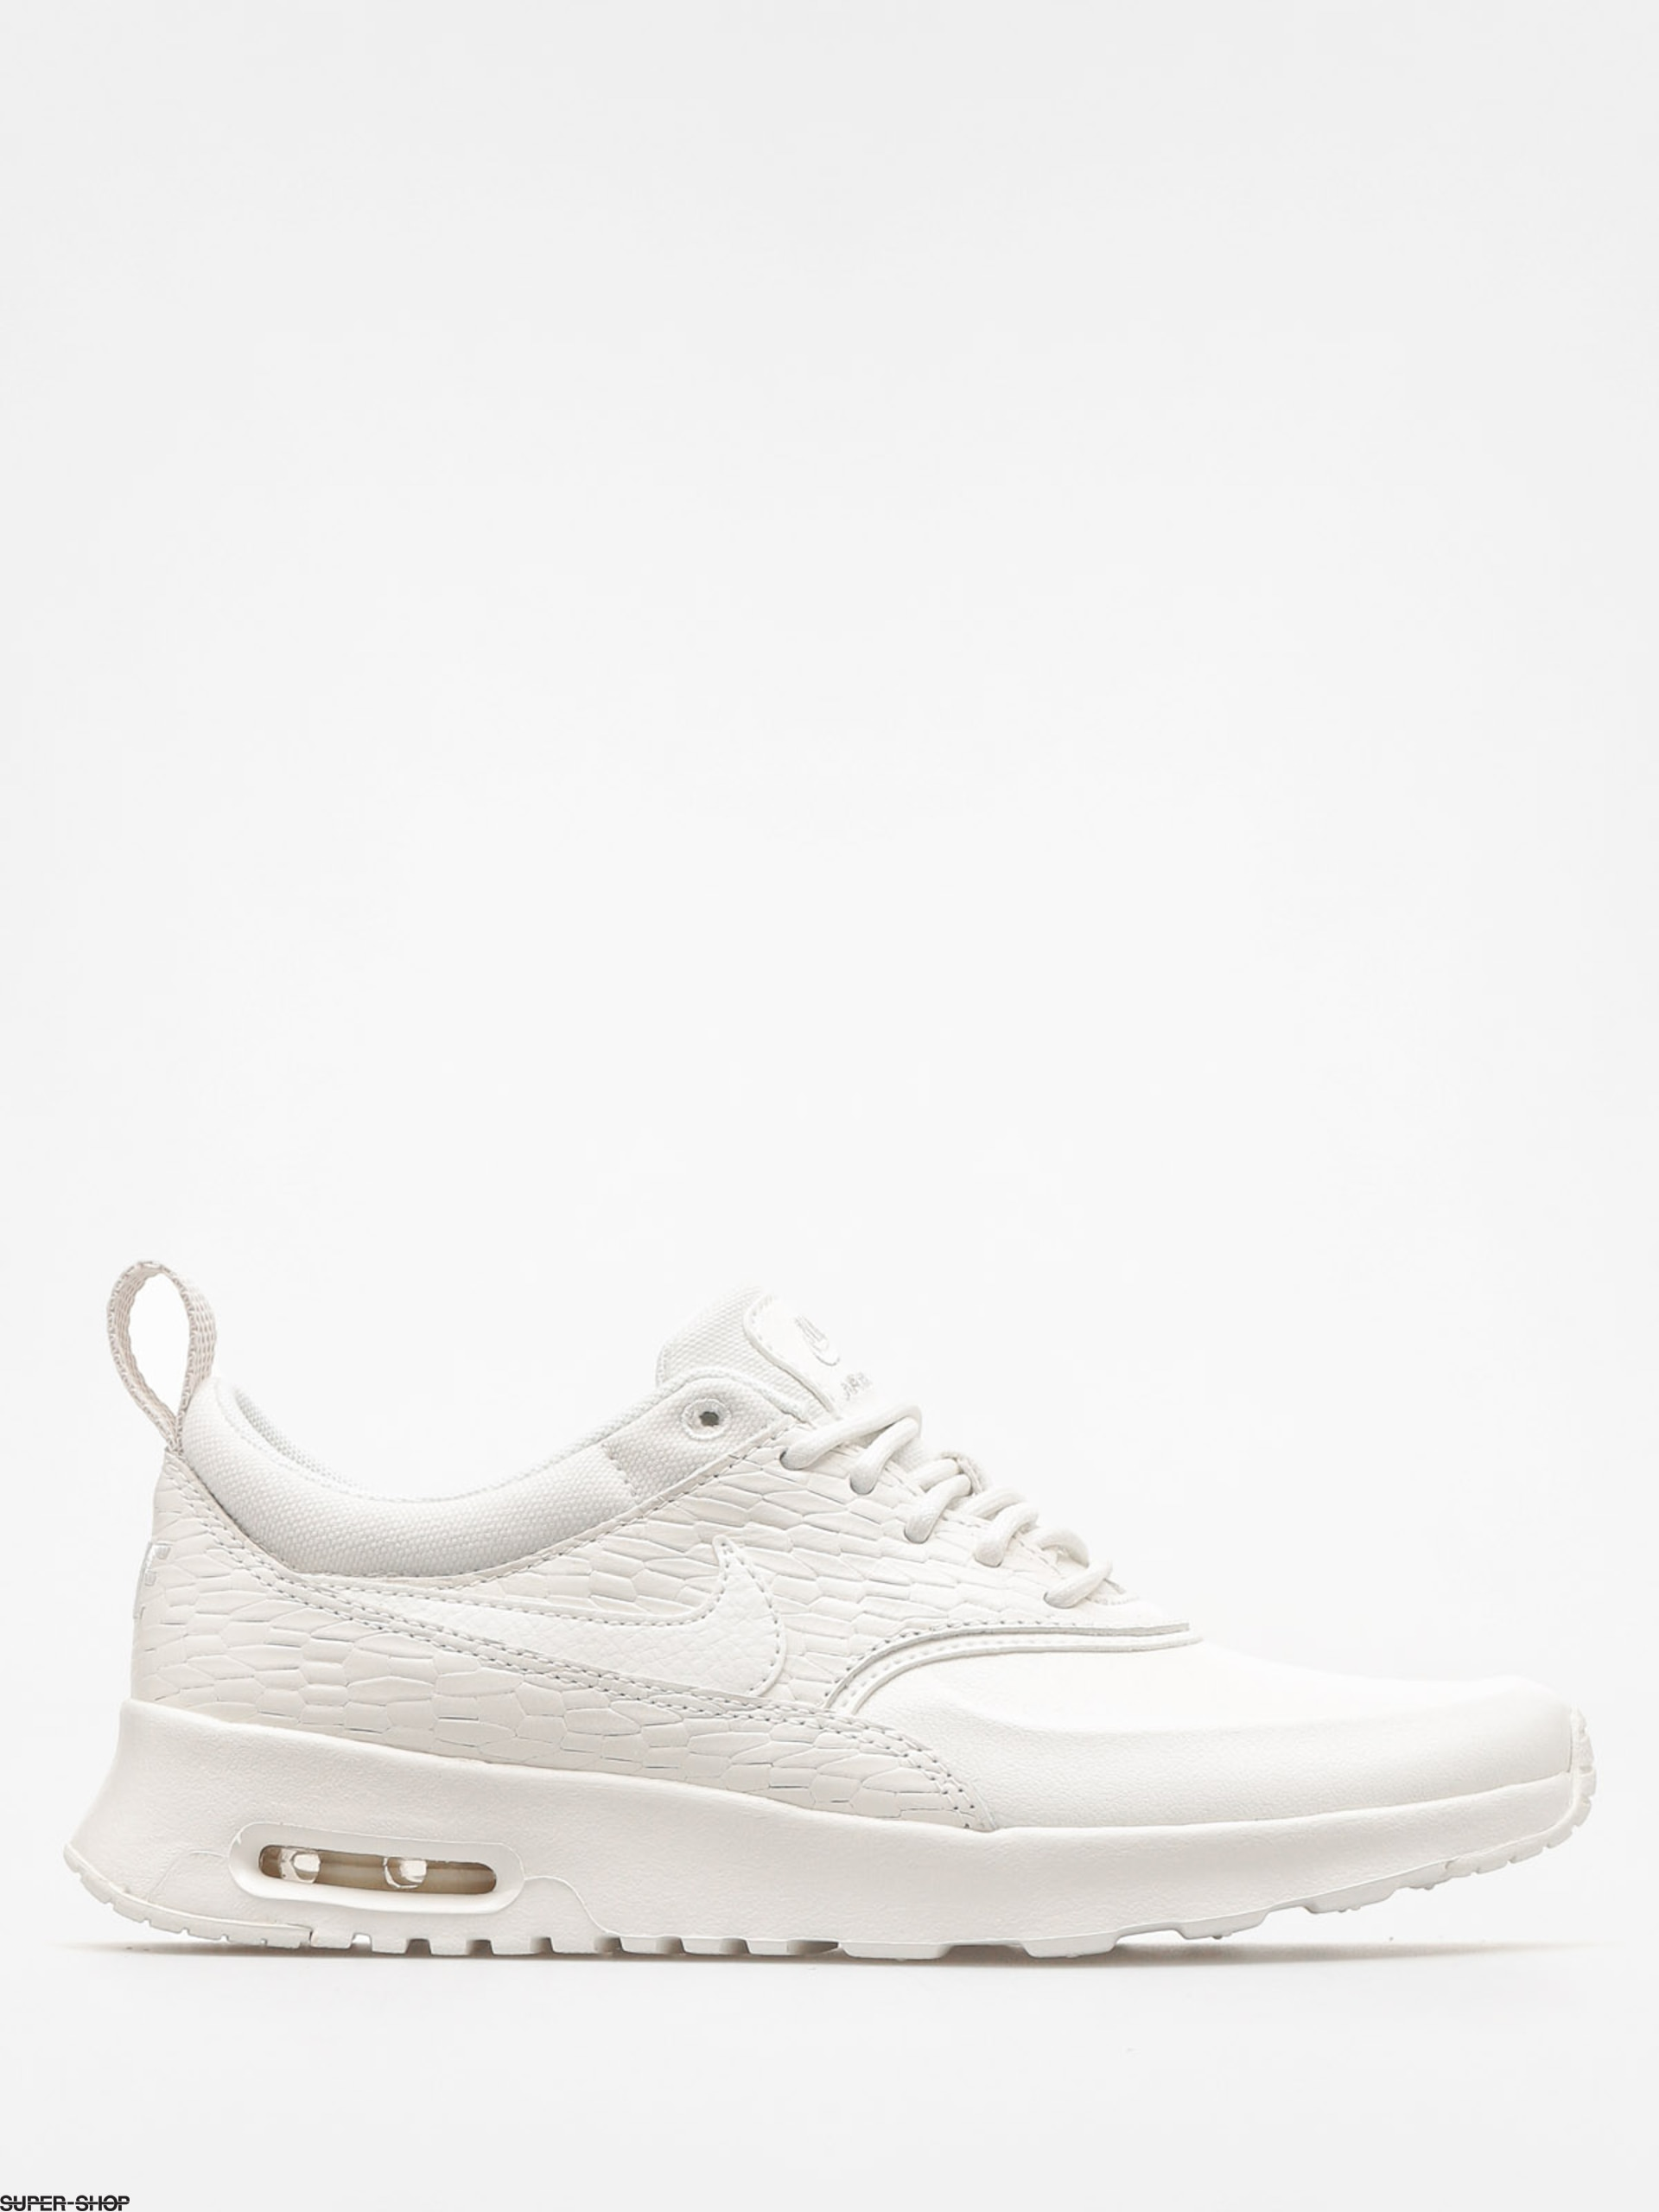 Nike Shoes Air Max Thea Prm Lea Wmn